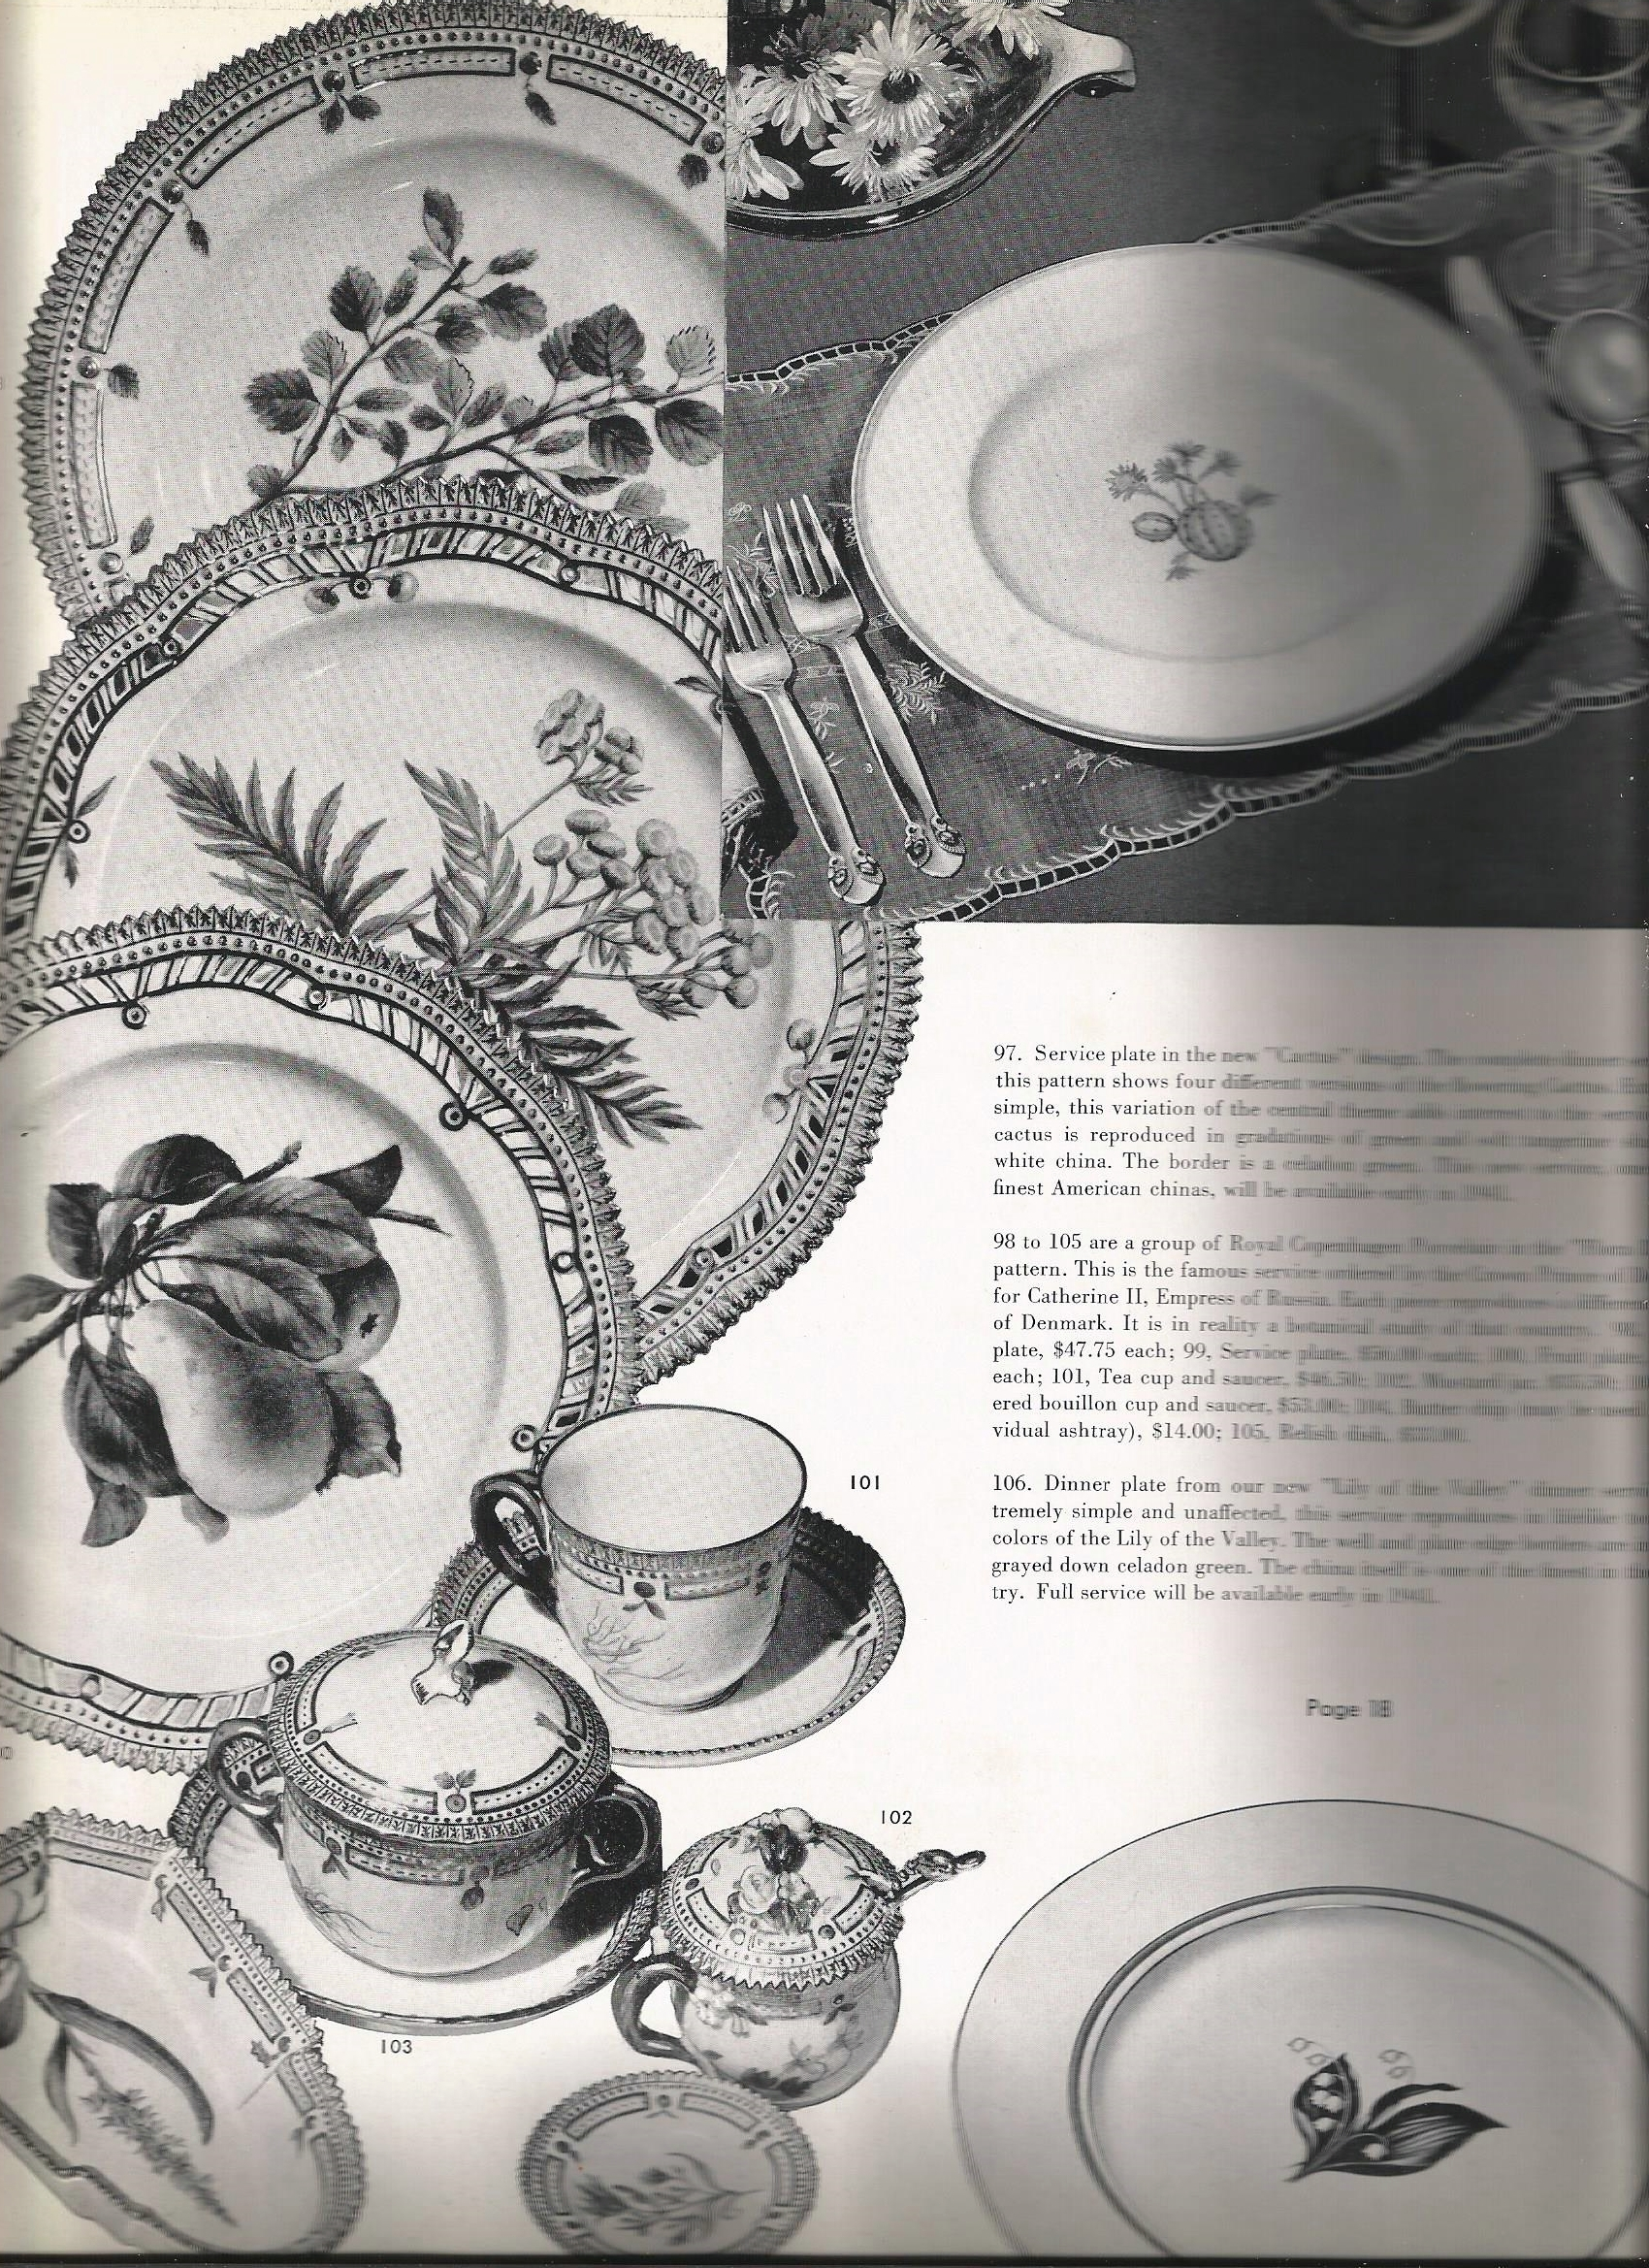 """Another stunning photograph of a Georg Jensen place setting, this time in Bittersweet (misidentified in the catalog as """"Cactus"""").  Note also the Blossom spoon sticking slightly out of the sugar pot 102."""